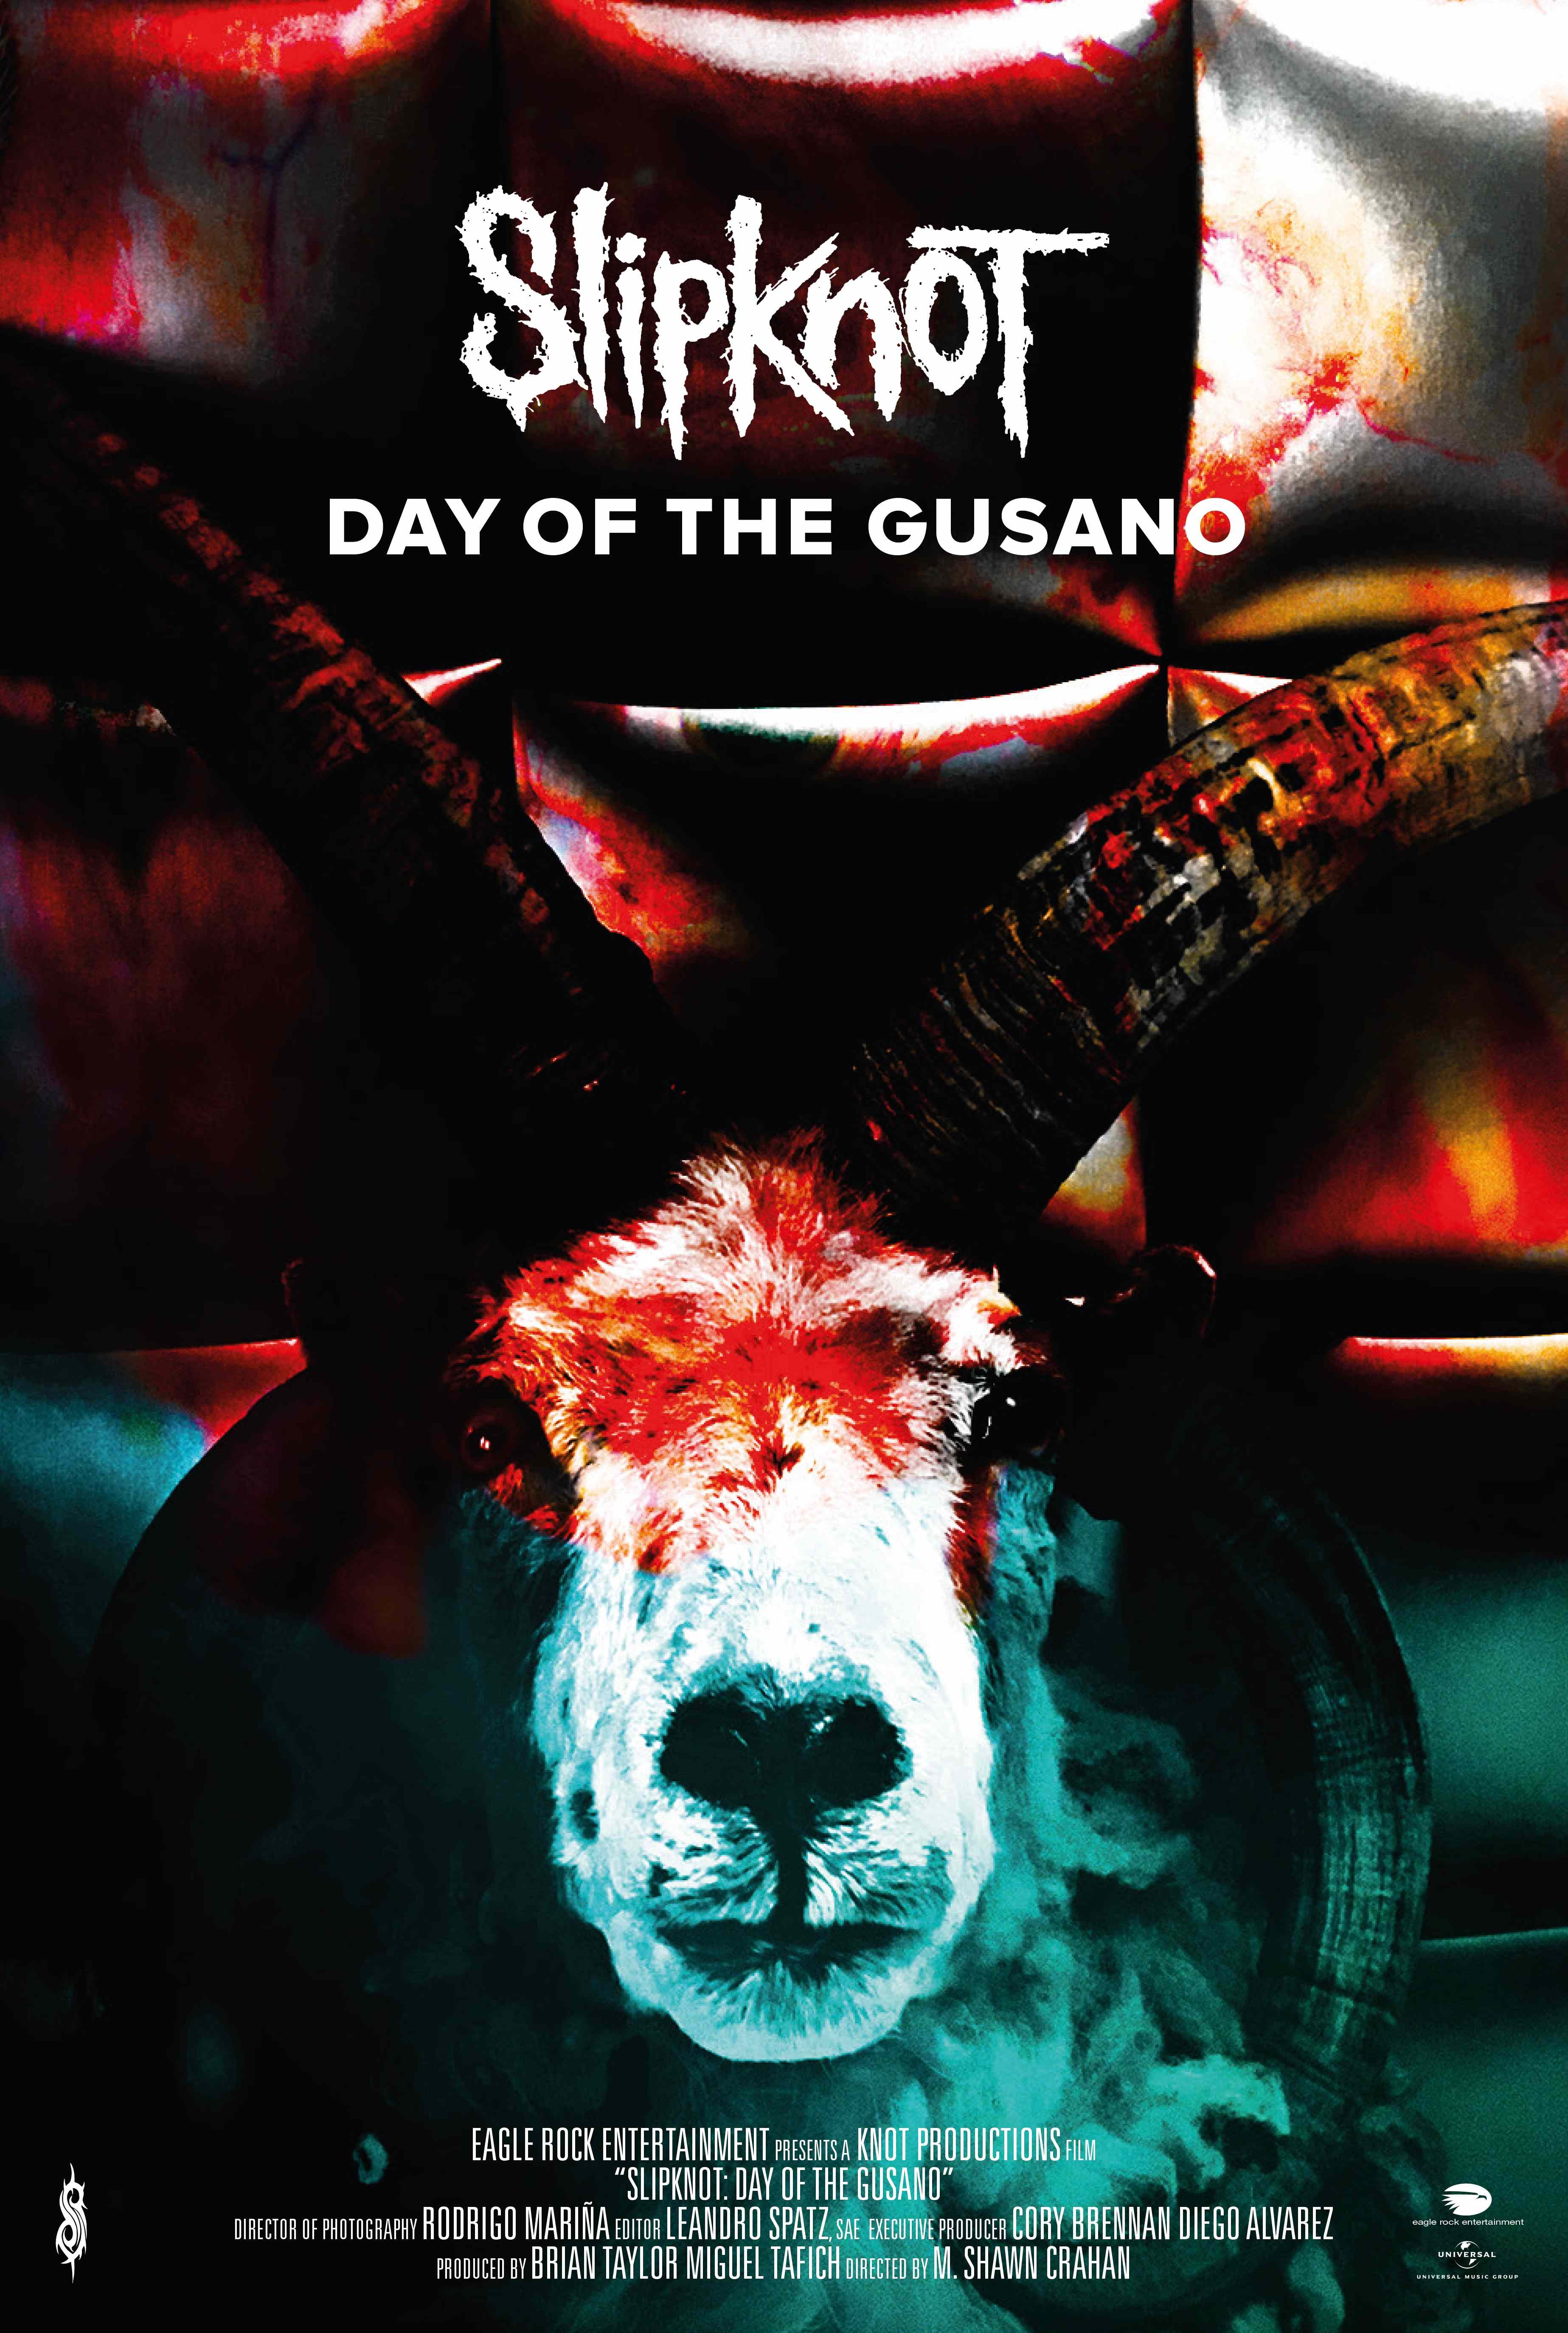 SLIPKNOT's 'Day of the Gusano' tickets on sale now